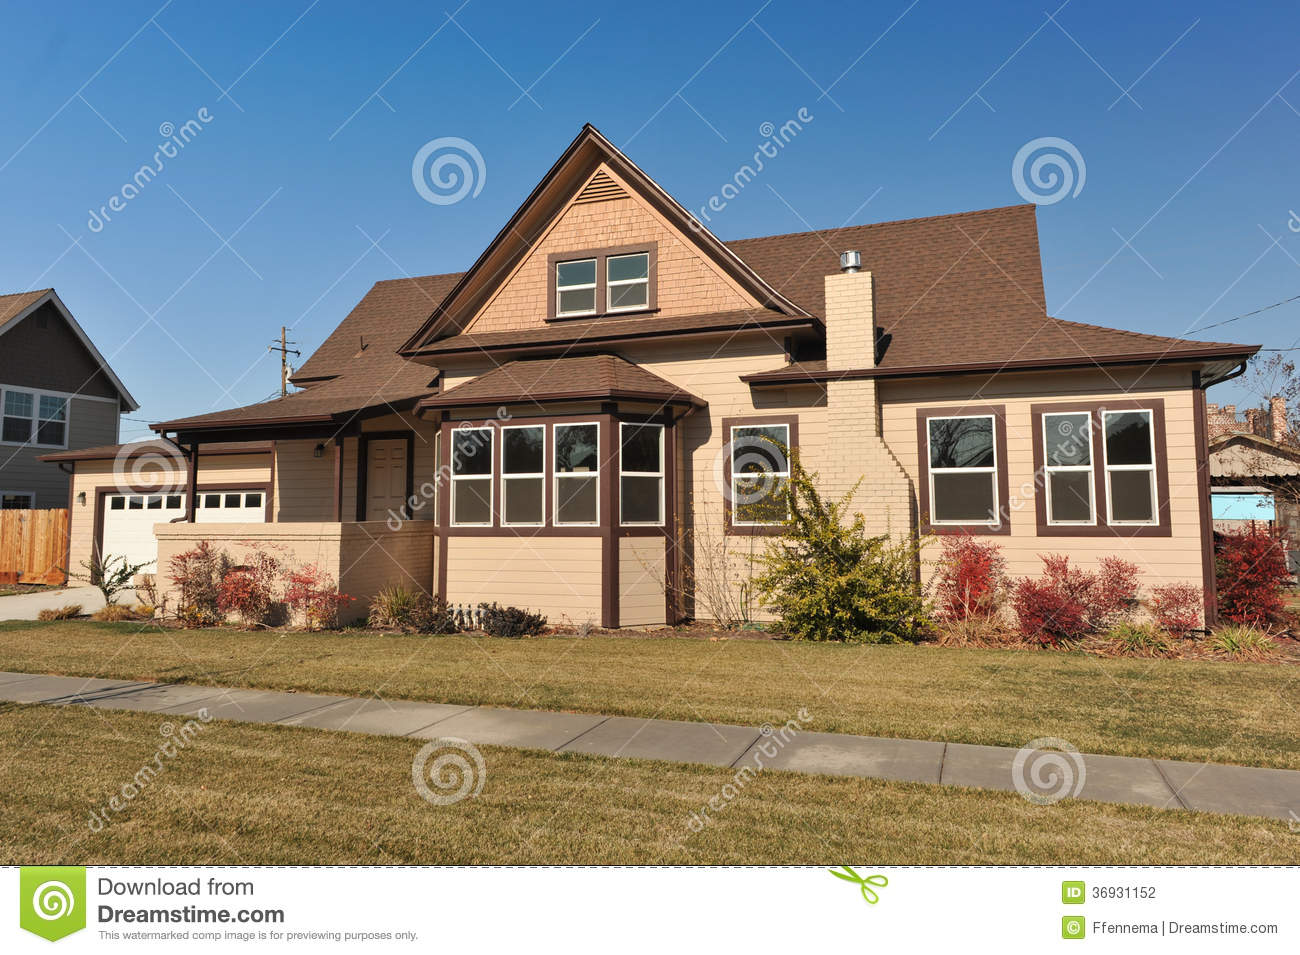 Great House With Two Stories And Trees On Side Stock Photo